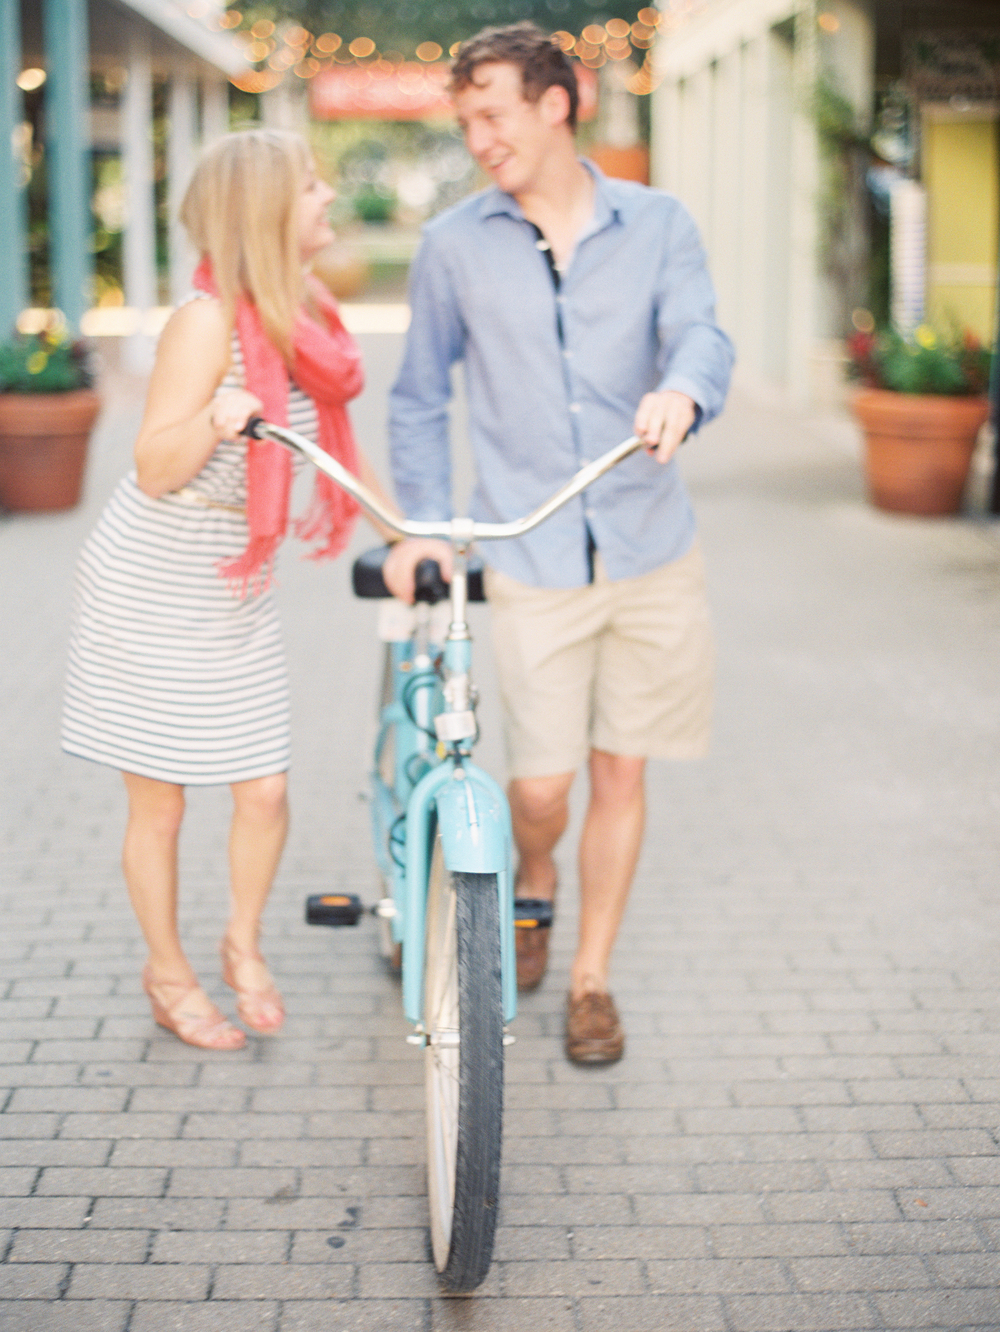 Engagement Pictures by Lauren Kinsey | That's Pretty Ace